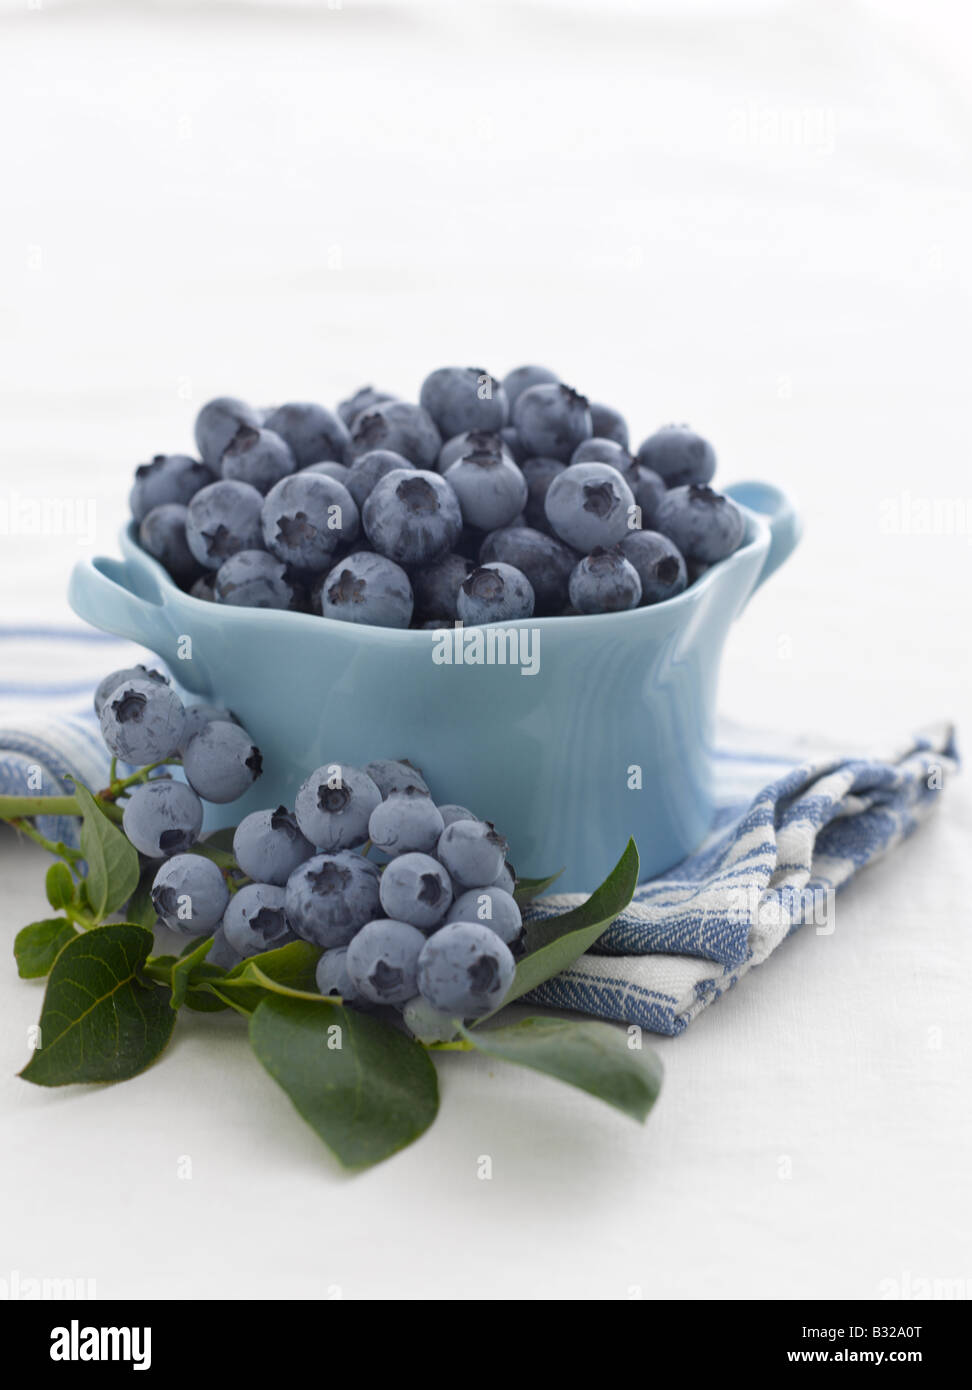 Fresh blueberries and blueberry stem - Stock Image